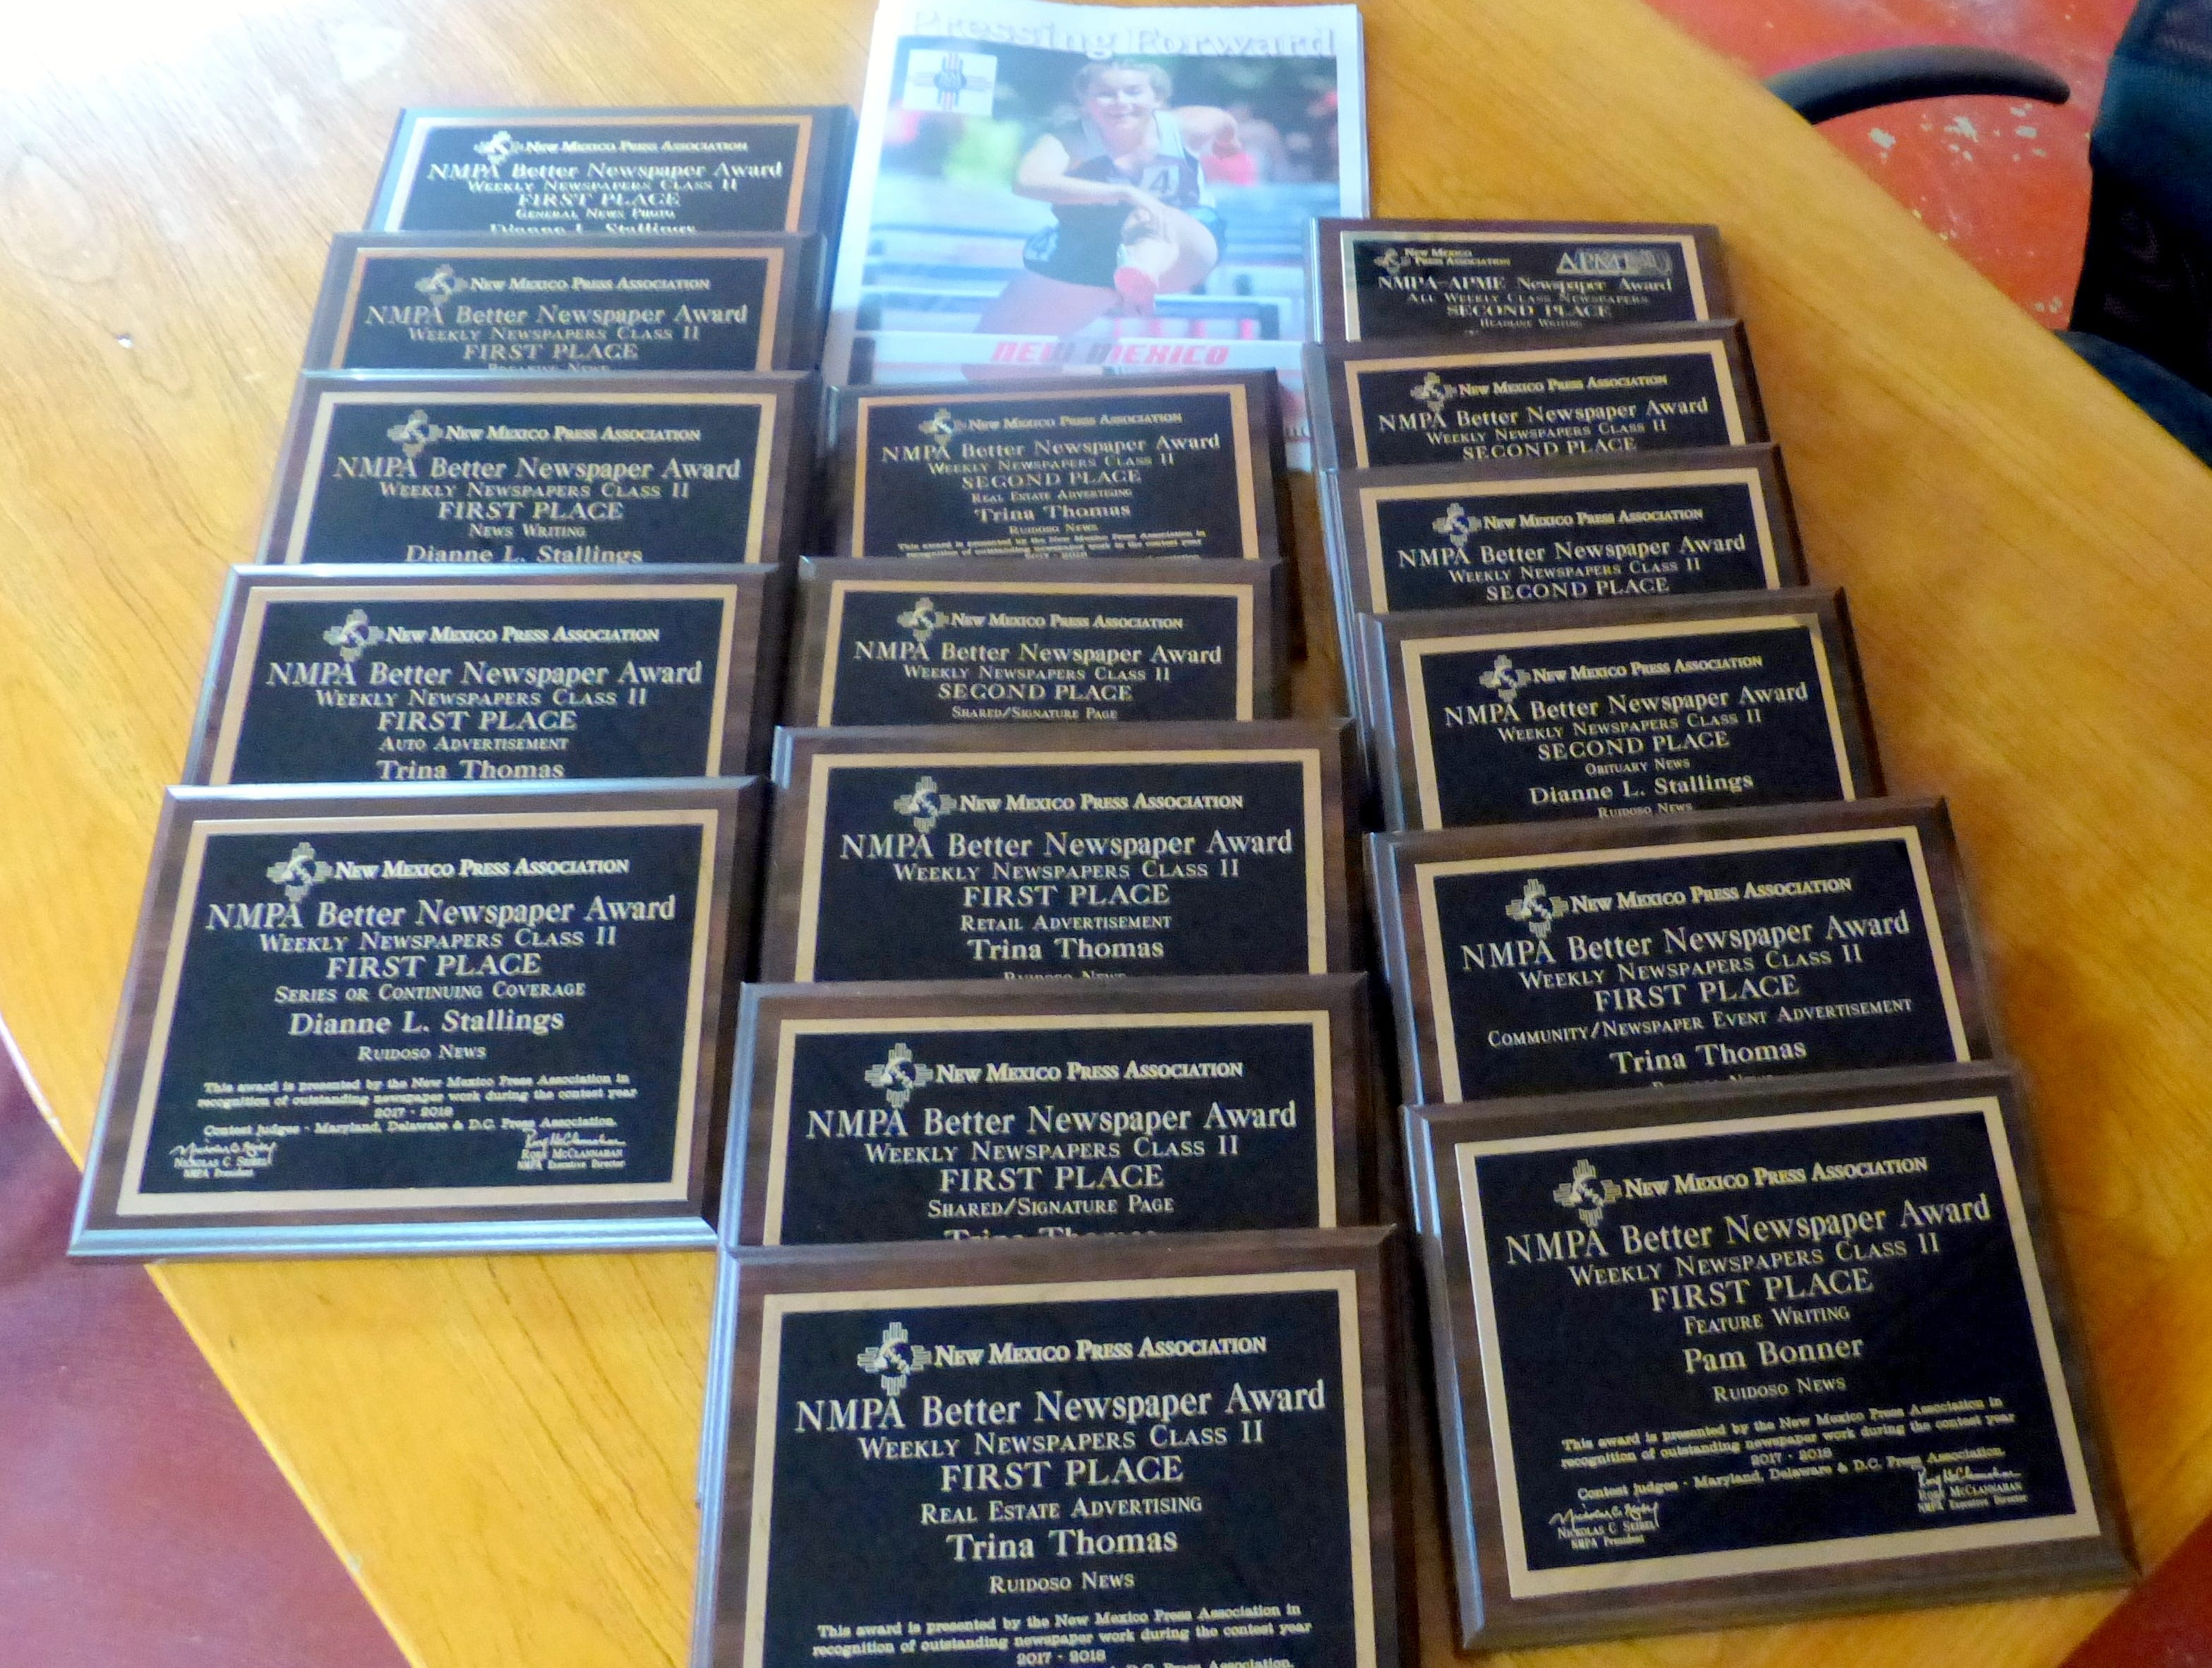 Ruidoso News staff wins 15 awards from the New Mexico Press Association